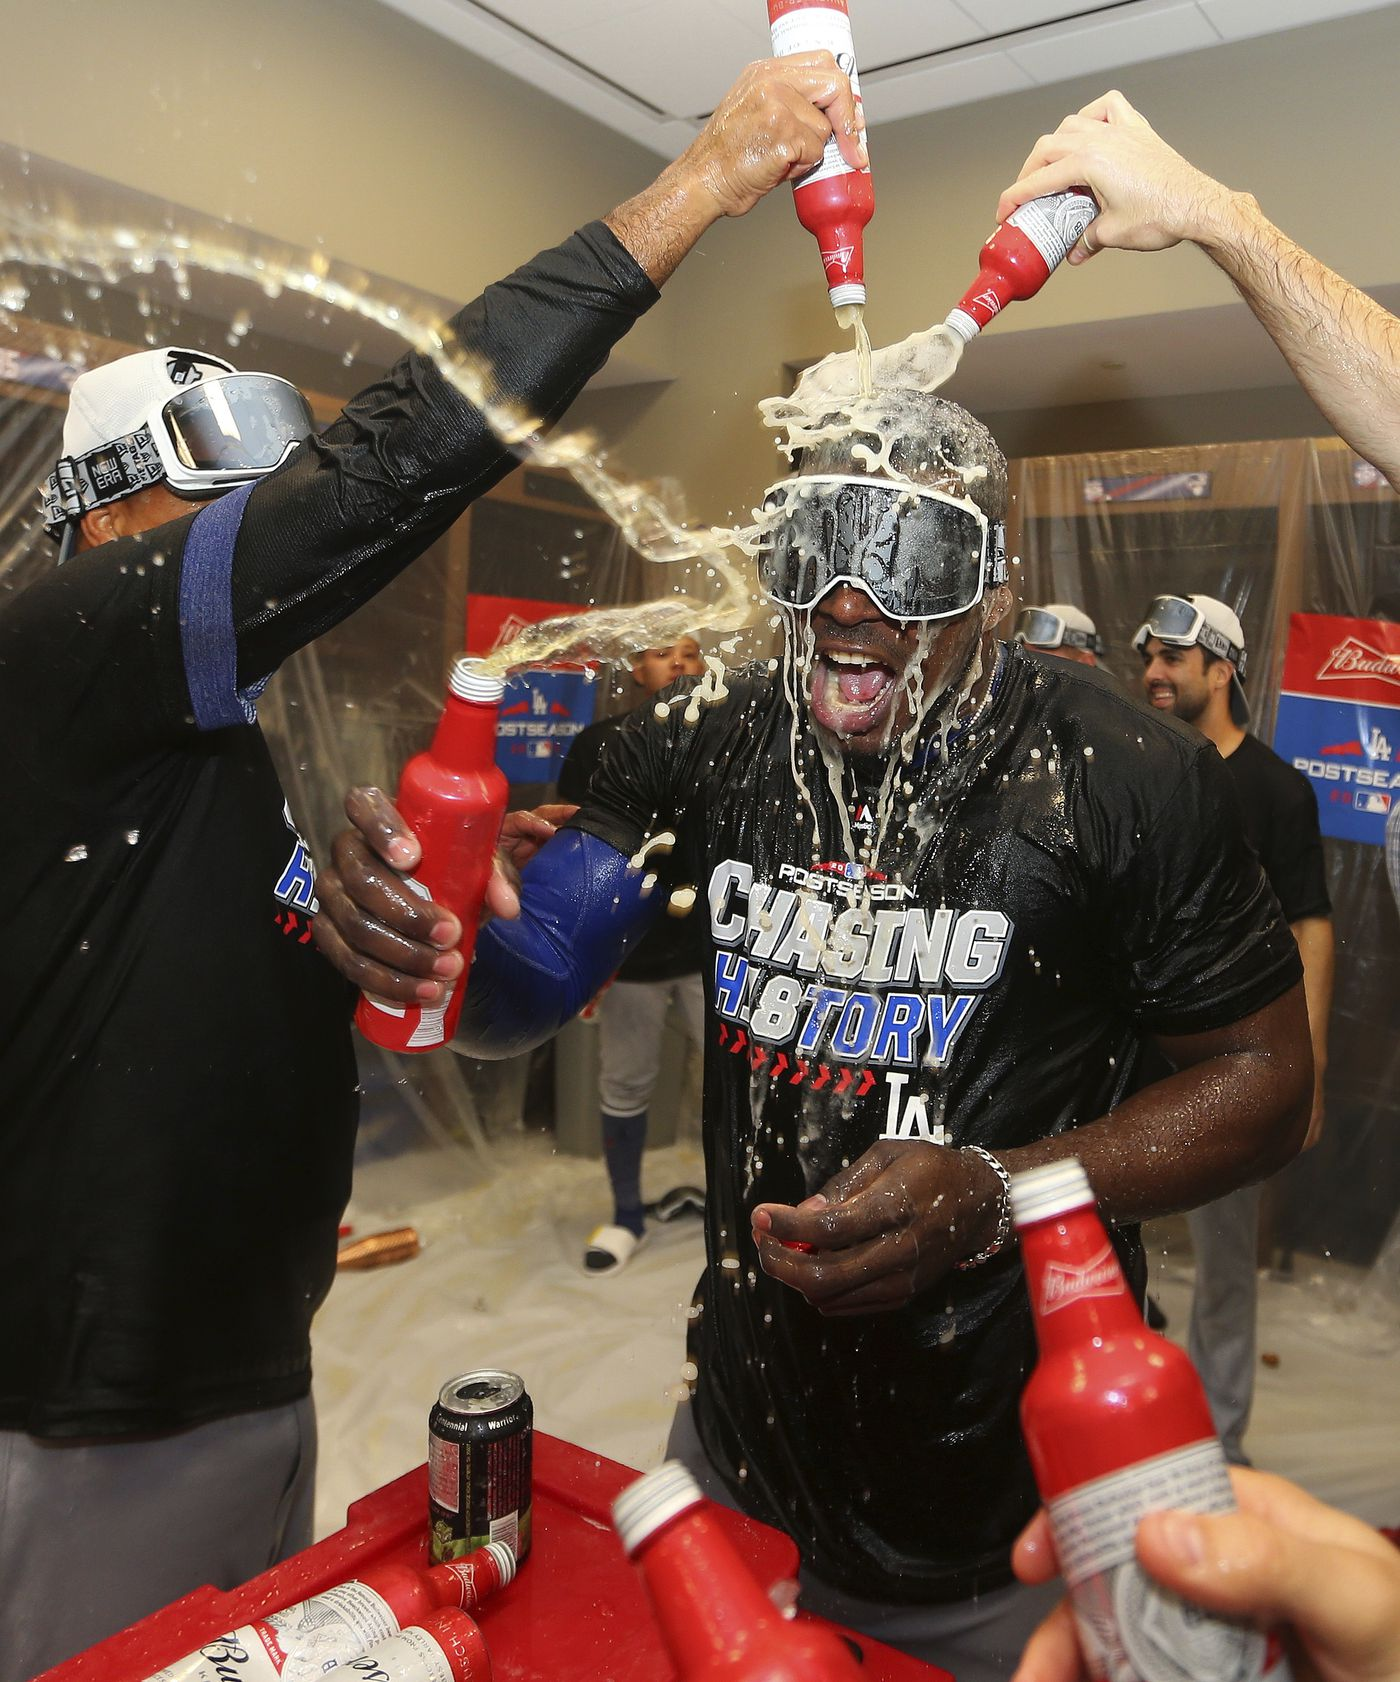 Los Angeles Dodgers' Yasiel Puig is doused after Game 4 of baseball's National League Division Series against the Atlanta Braves, Monday, Oct. 8, 2018, in Atlanta. The Los Angeles Dodgers won 6-2. (AP Photo/John Bazemore)